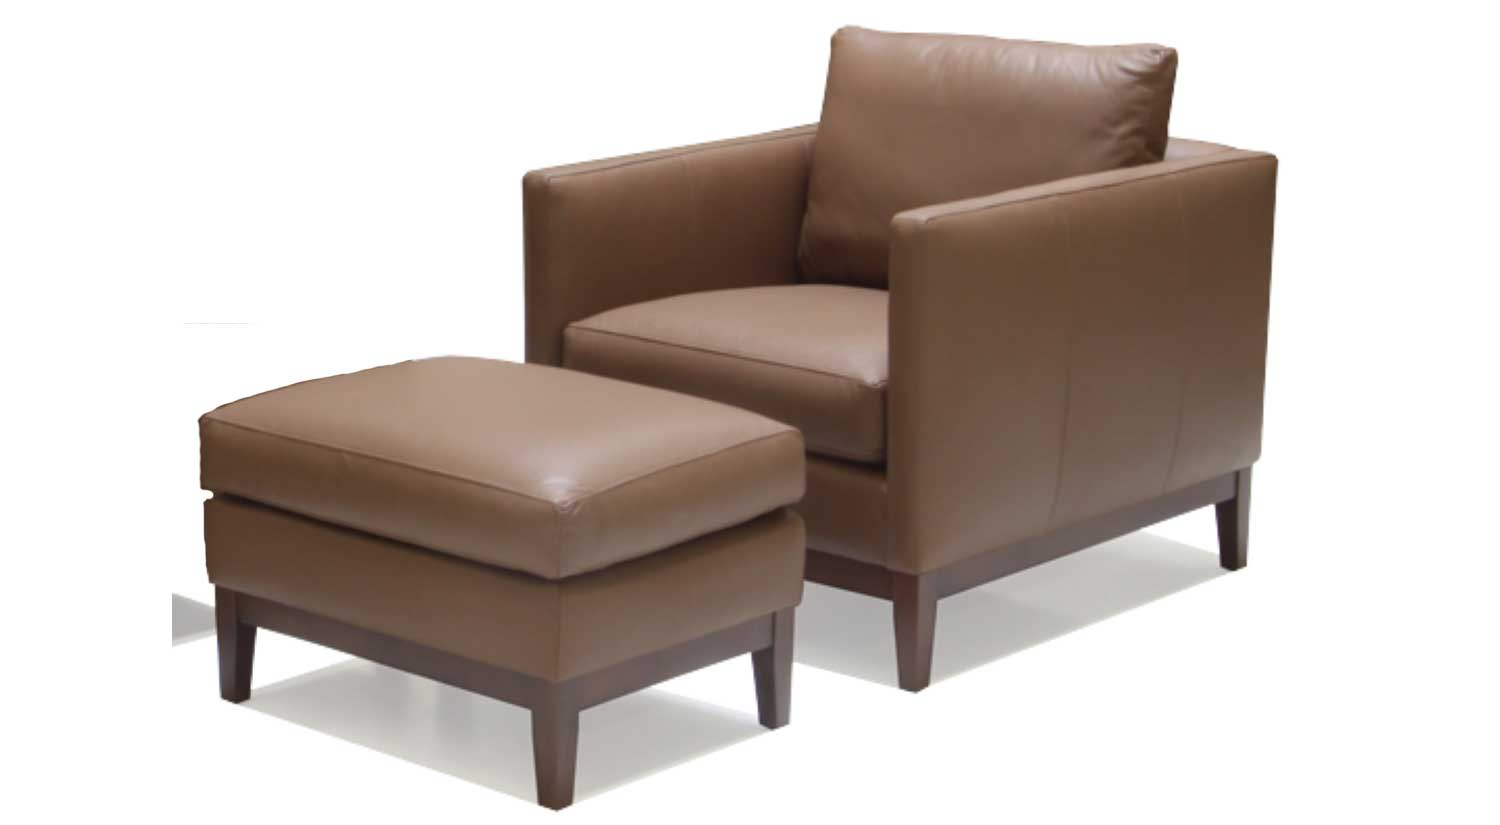 Porter Chair Circle Furniture Porter Chair Wood Base Sofas Circle